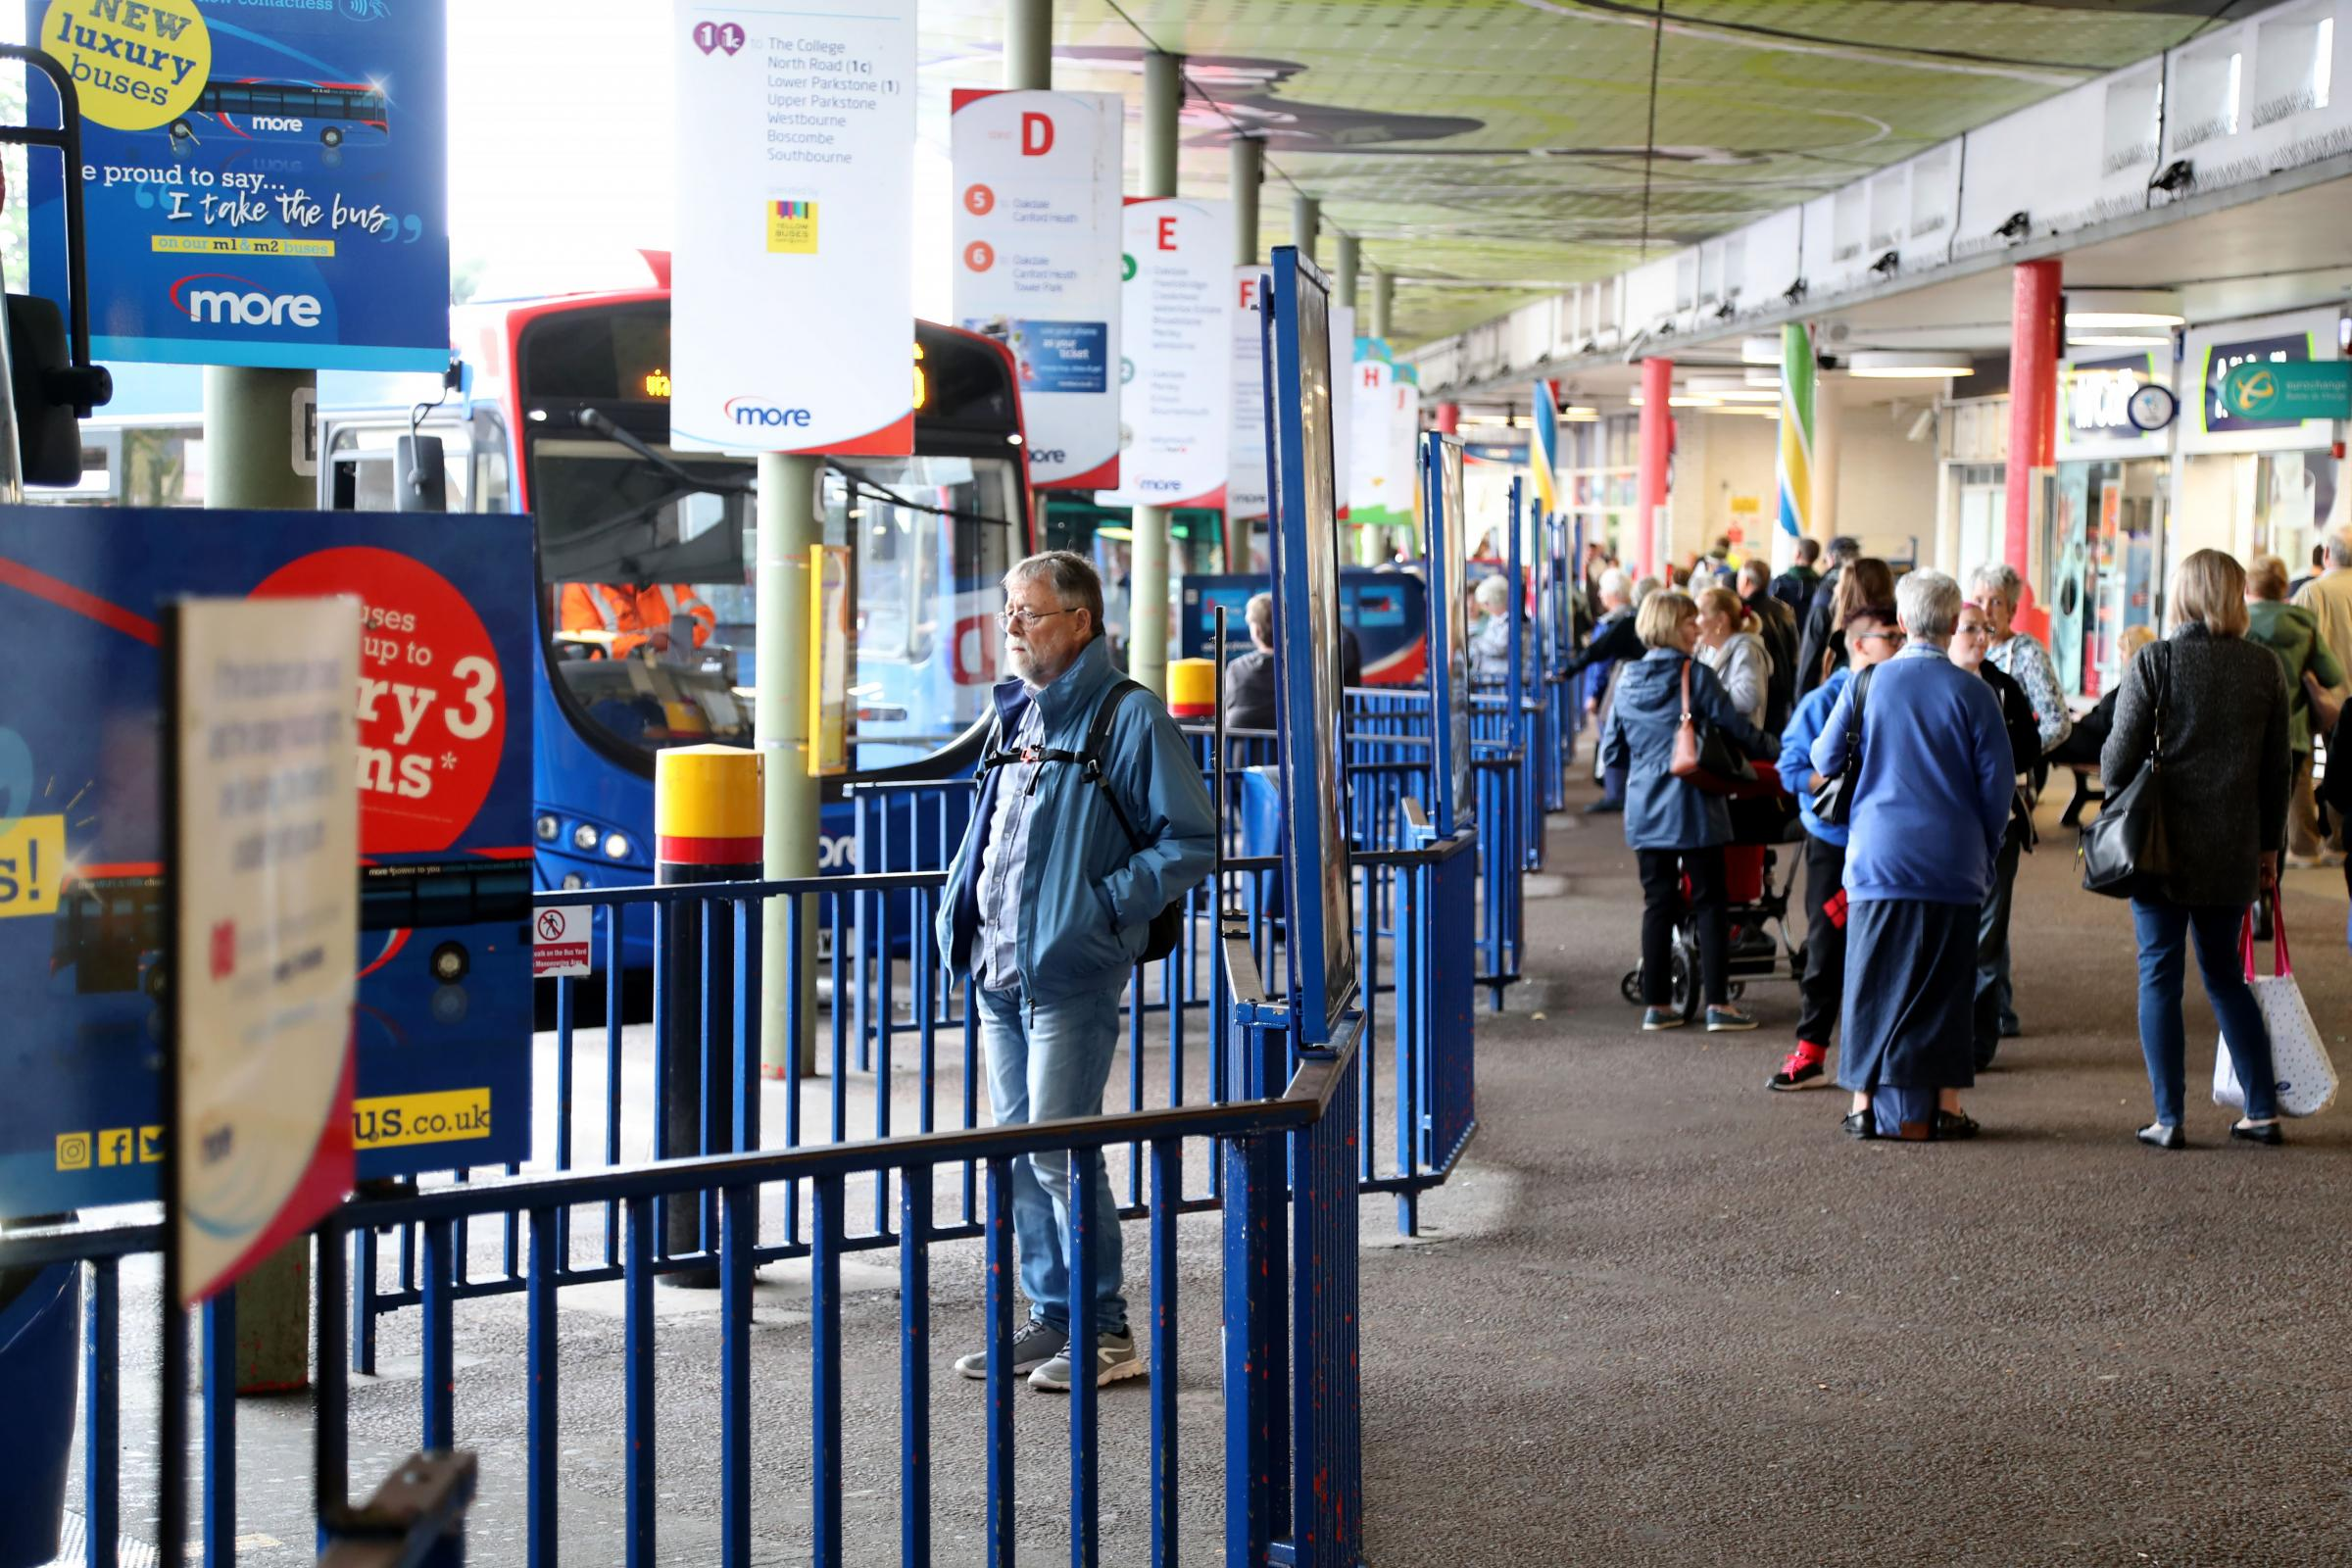 Poole bus station is 'like a war zone' says former Poole council leader